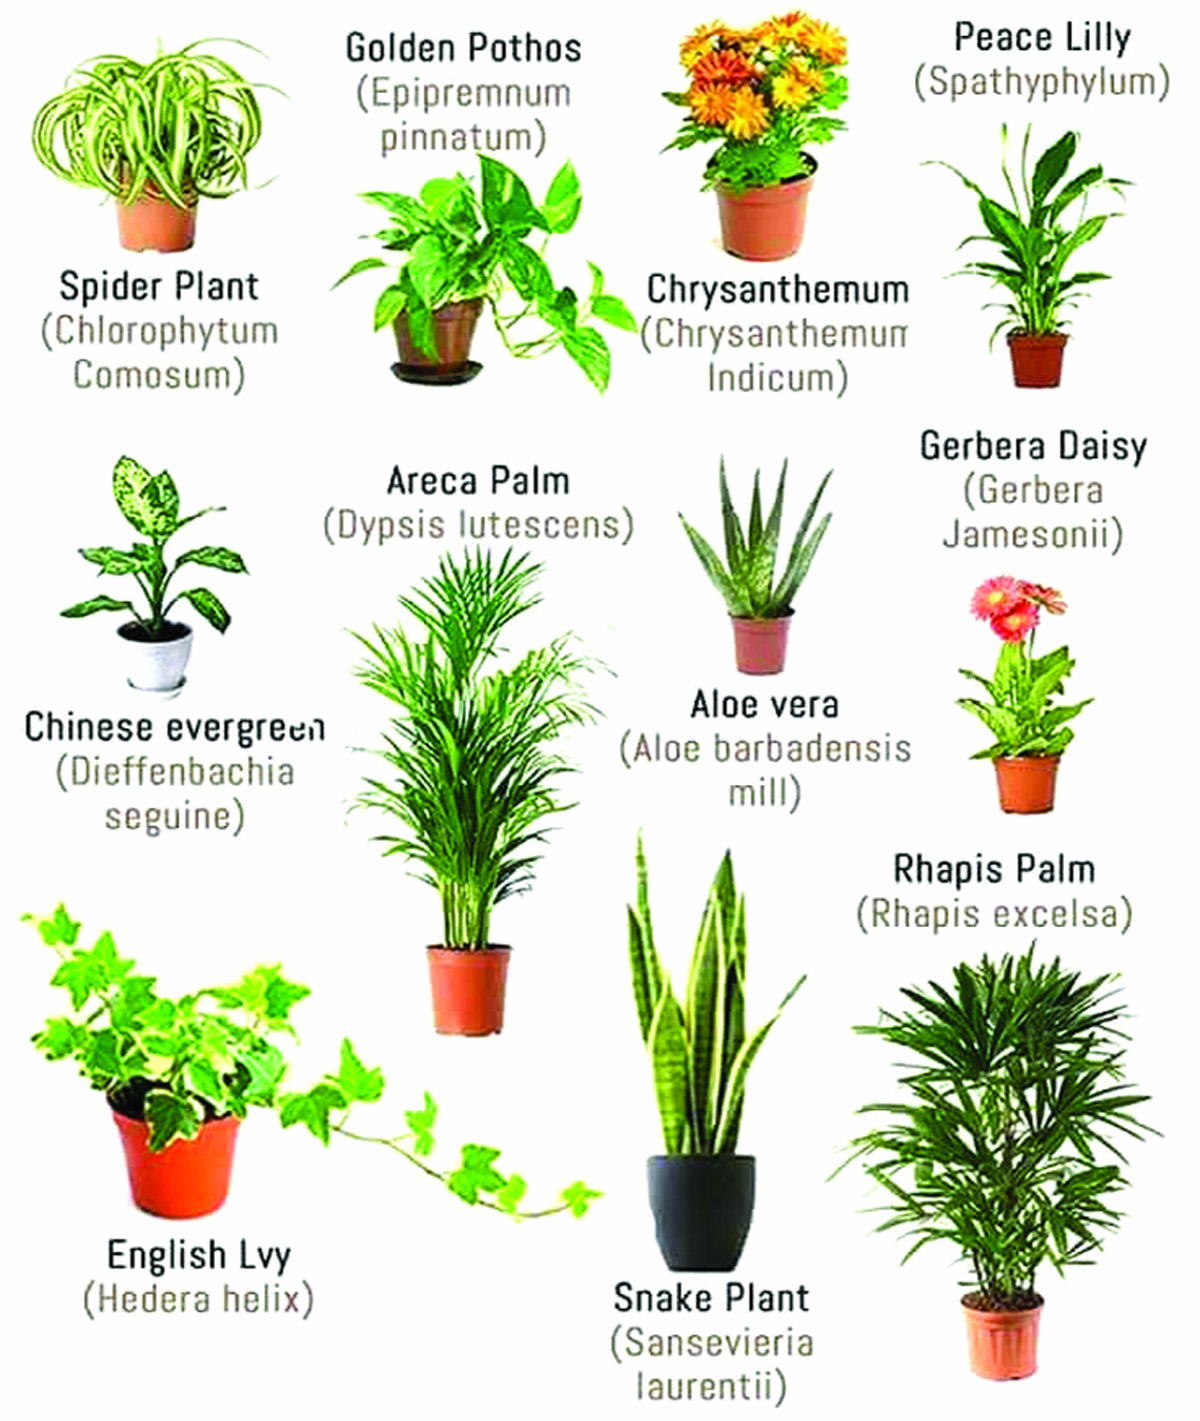 As And When There Is Smog Issue Severe Air Pollution People Start Remembering Purifiers Plants Or Other Mechanical